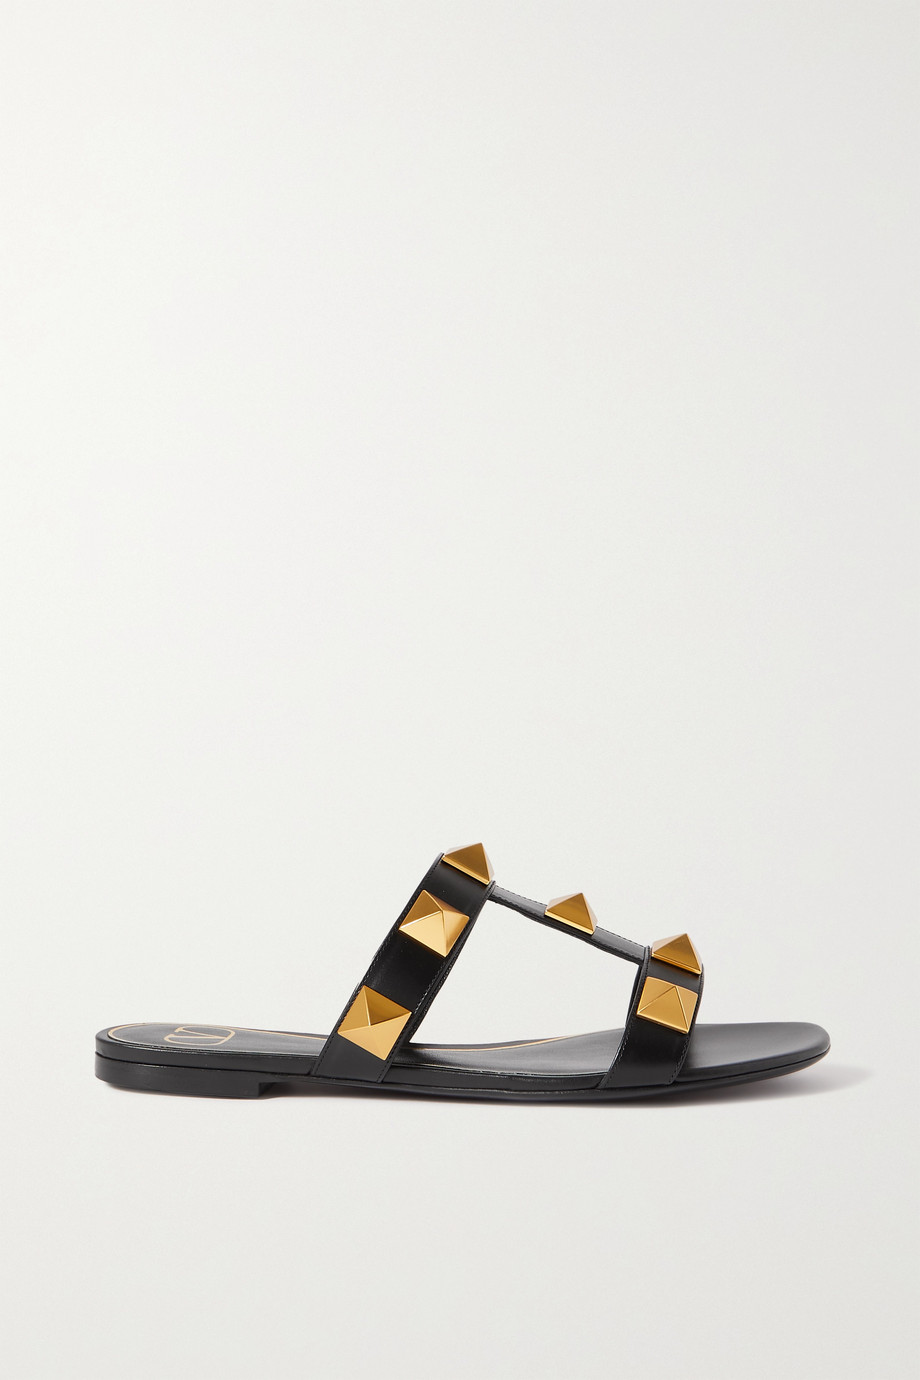 VALENTINO Valentino Garavani Roman Stud leather sandals